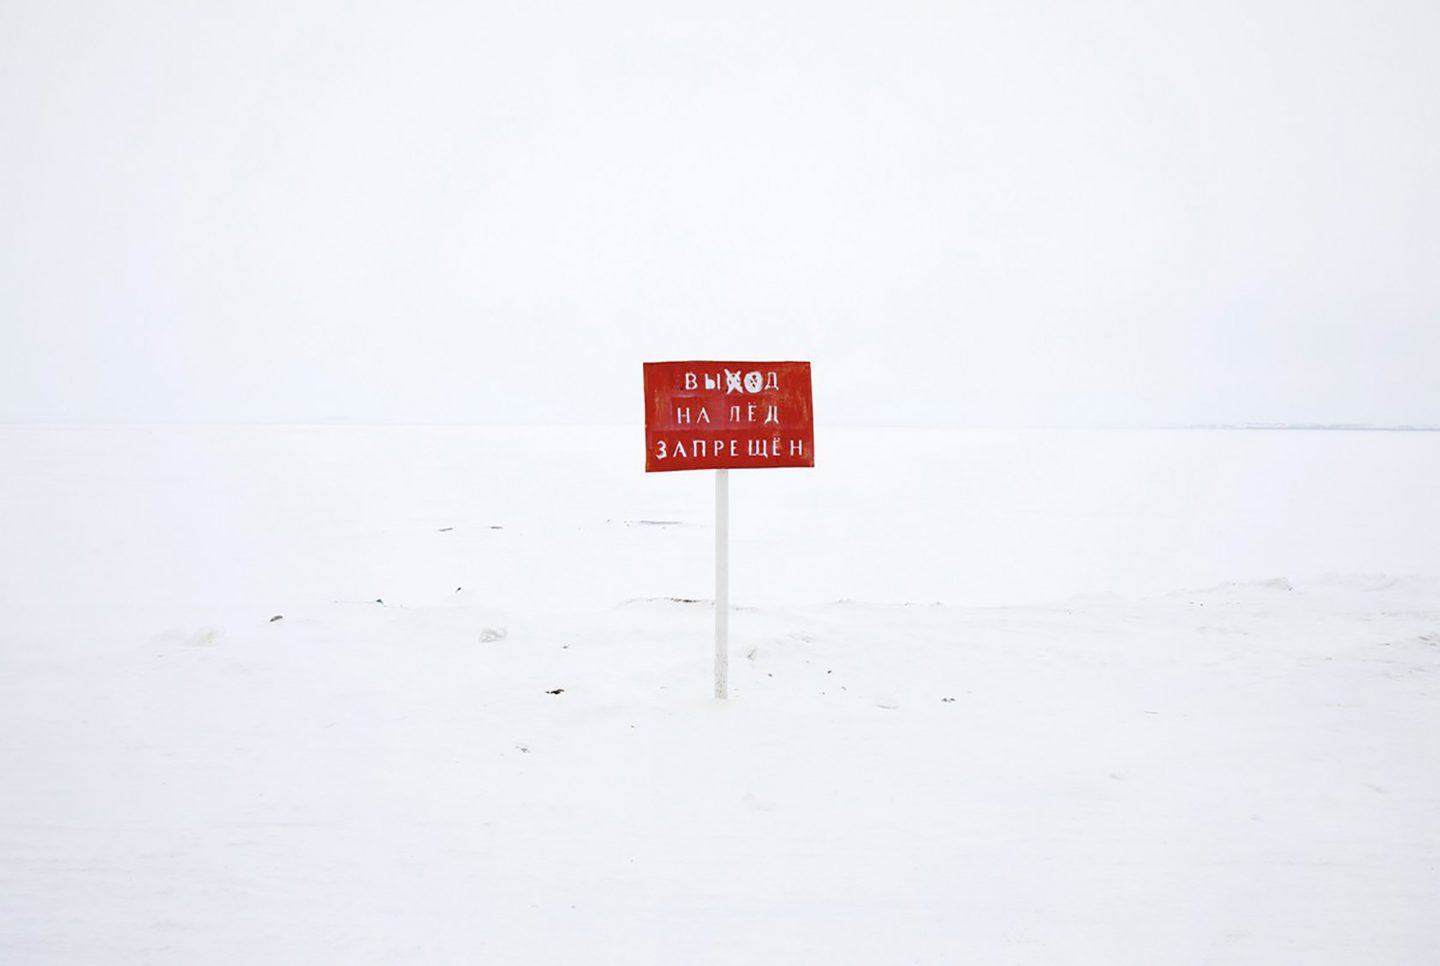 IGNANT-Photography-Oded-Wagenstein-Last-Years-Snow-4